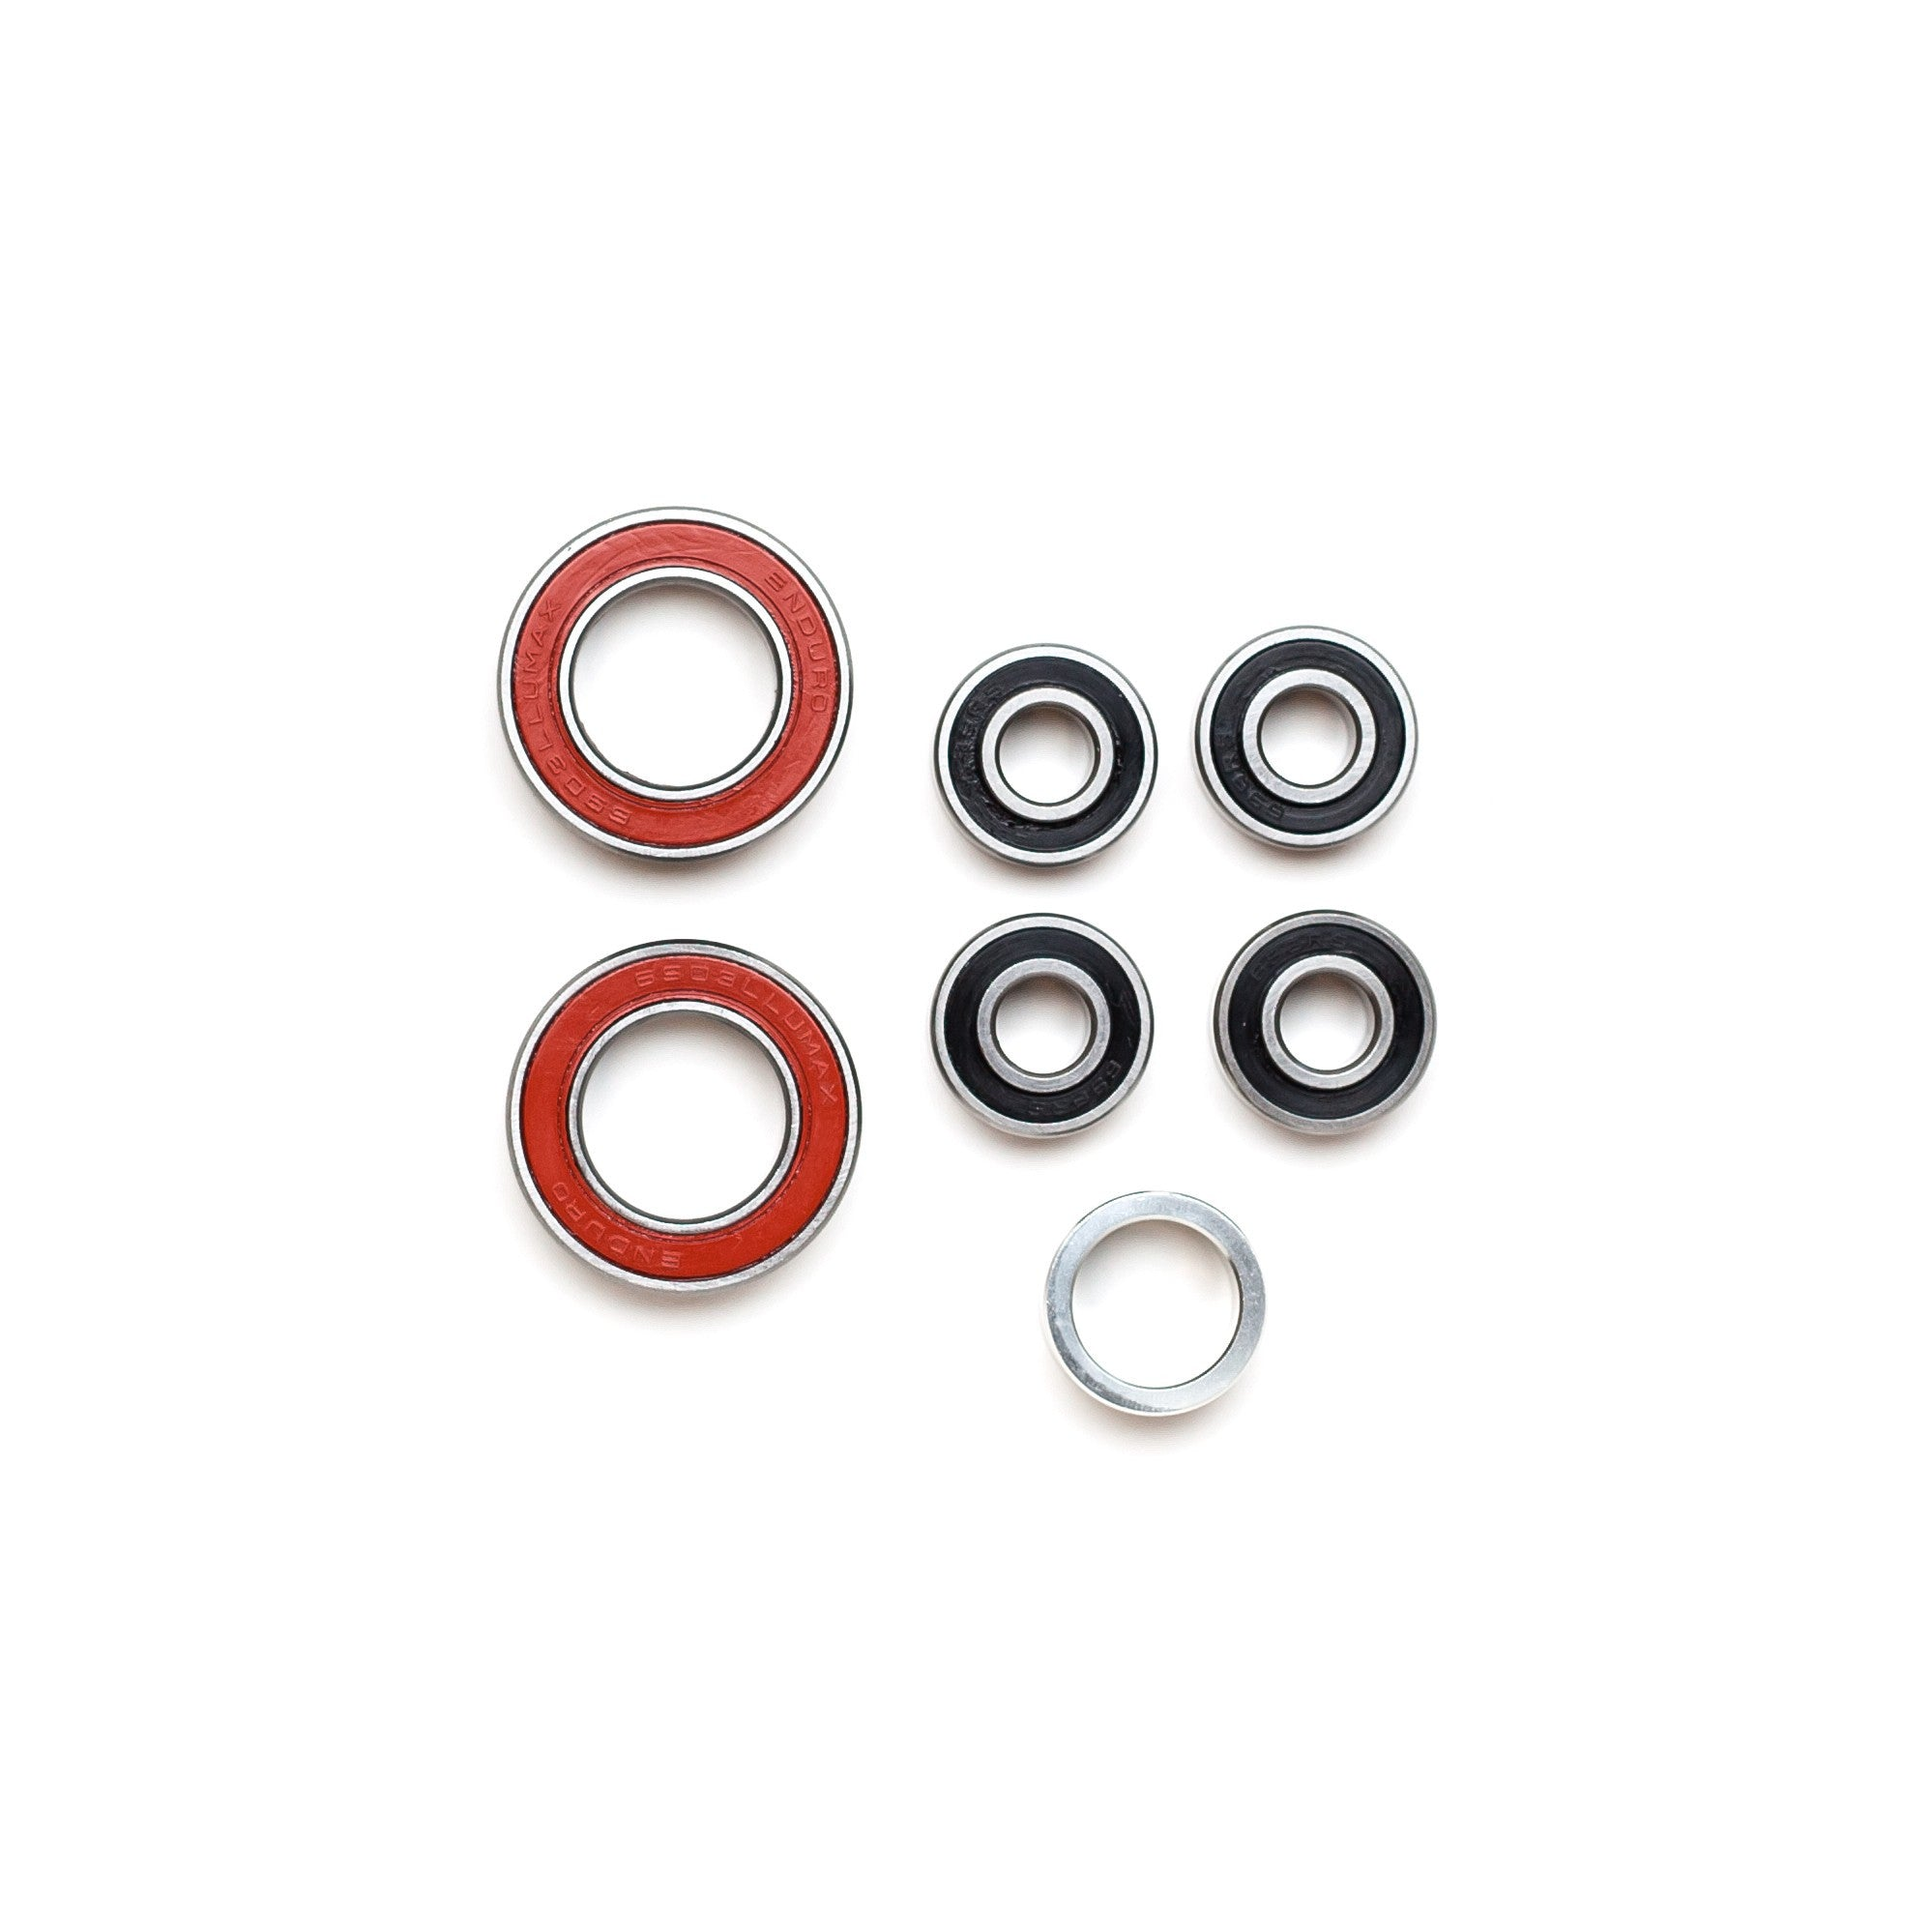 ASR 08-09 BEARING KIT (ALLOY)